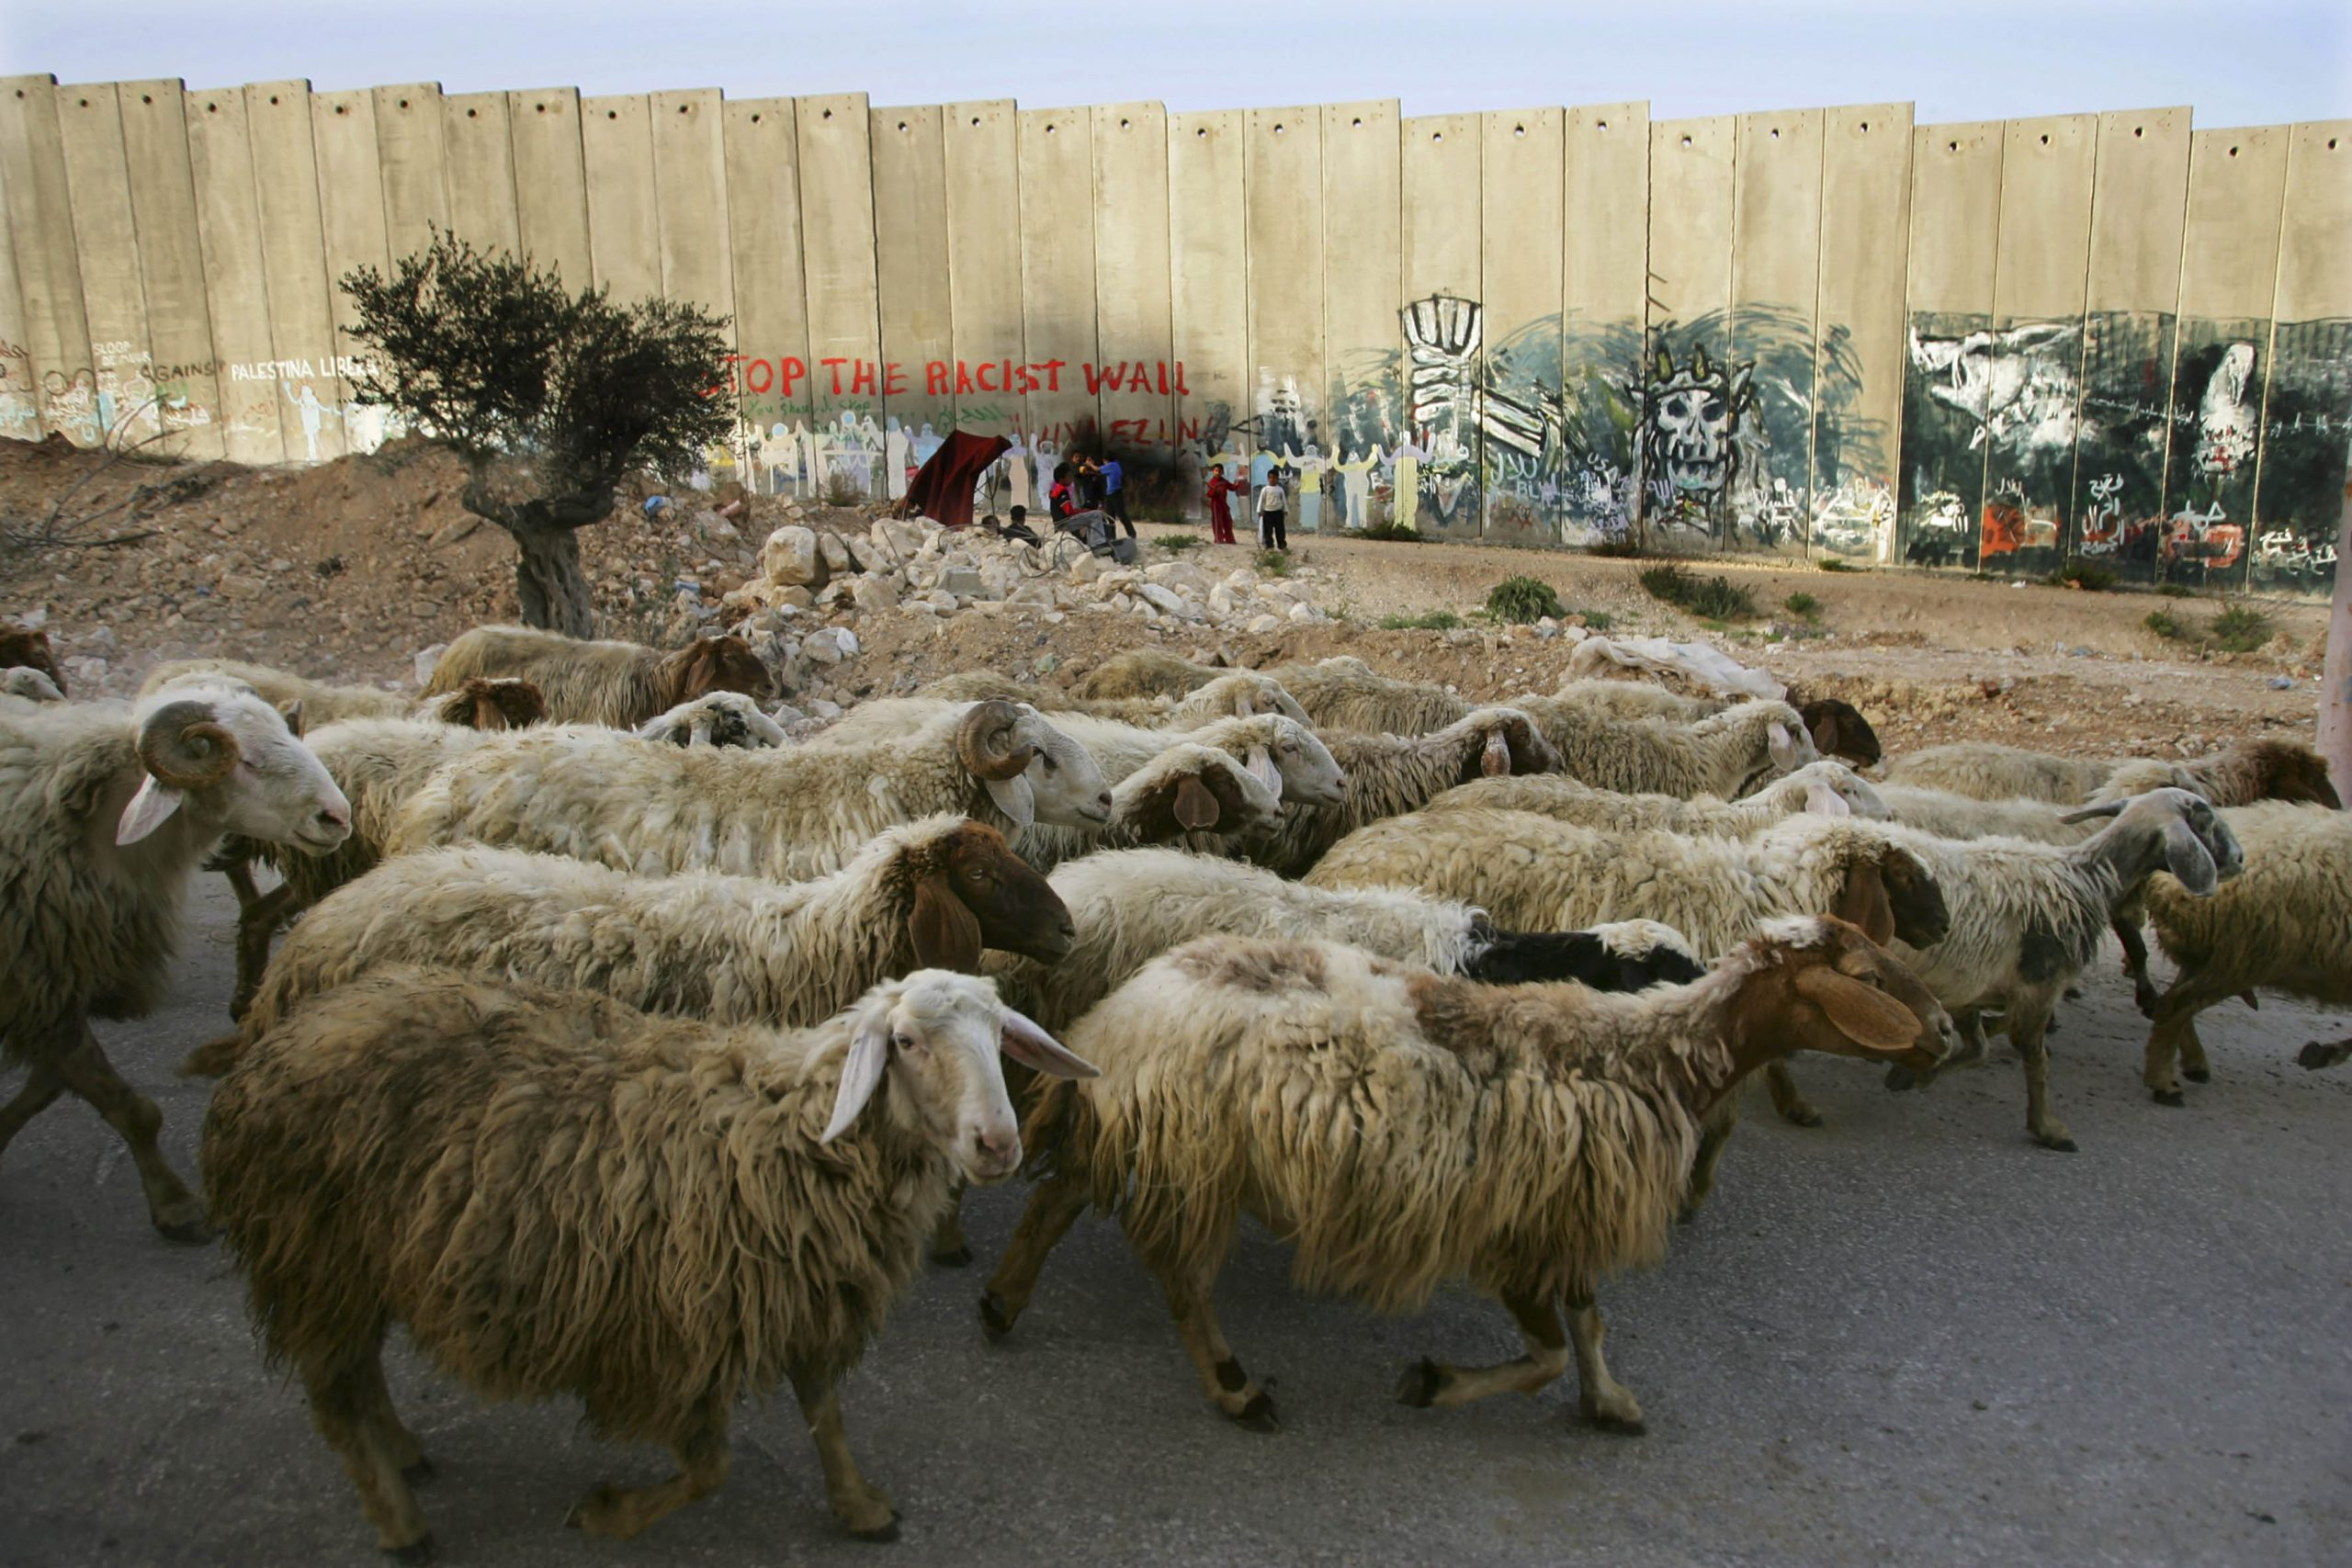 23 March 2006: Sheep walk along the concrete wall in the Aida refugee camp in Bethlehem, West Bank. The barrier blocks access between Bethlehem and Israel and will eventually separate Jerusalem from the West Bank. (Photograph by Paula Bronstein/ Getty Images)